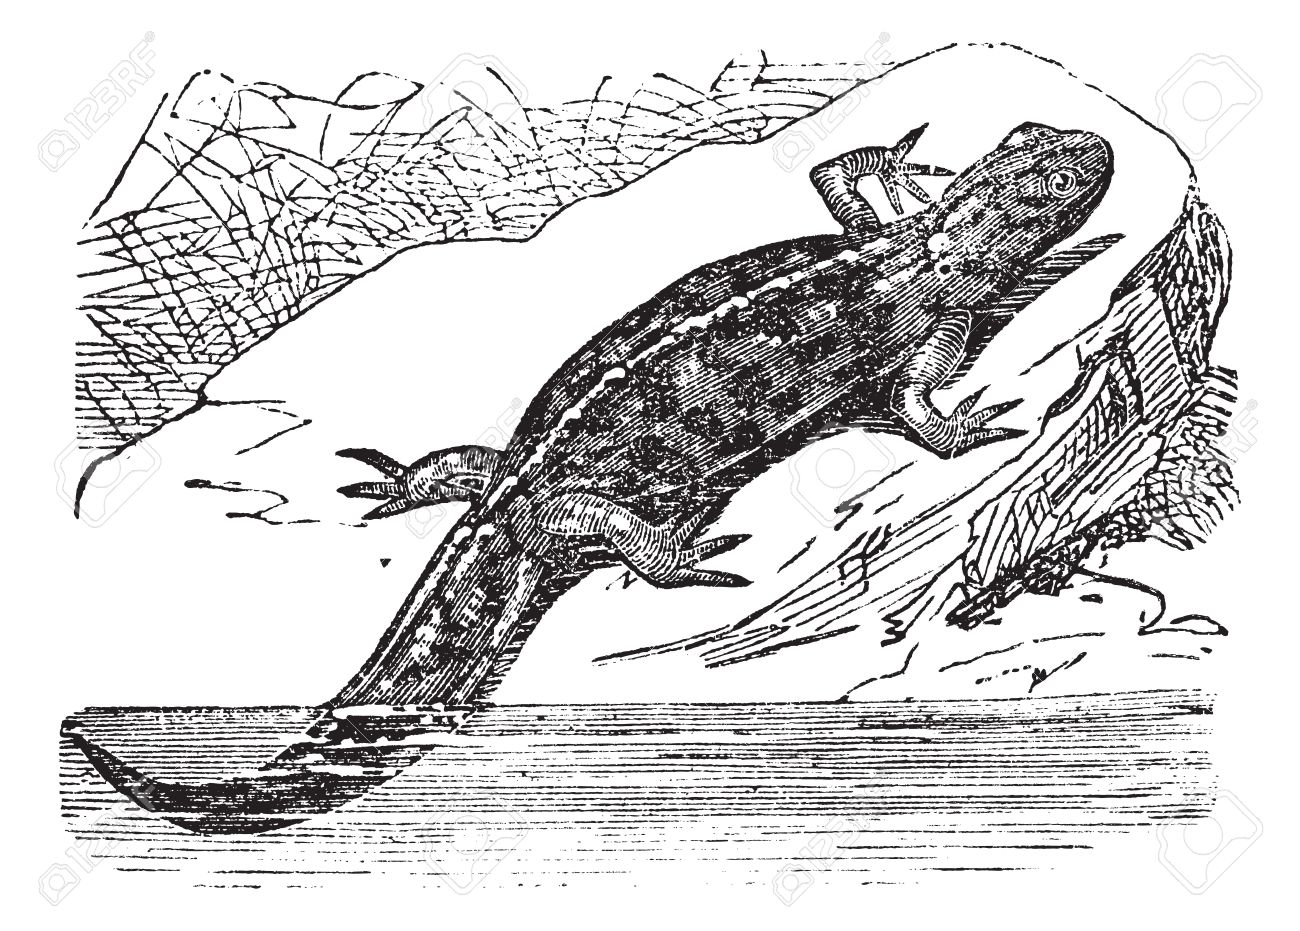 Smooth Newt Or Lissotriton Vulgaris, Vintage Engraved Illustration.